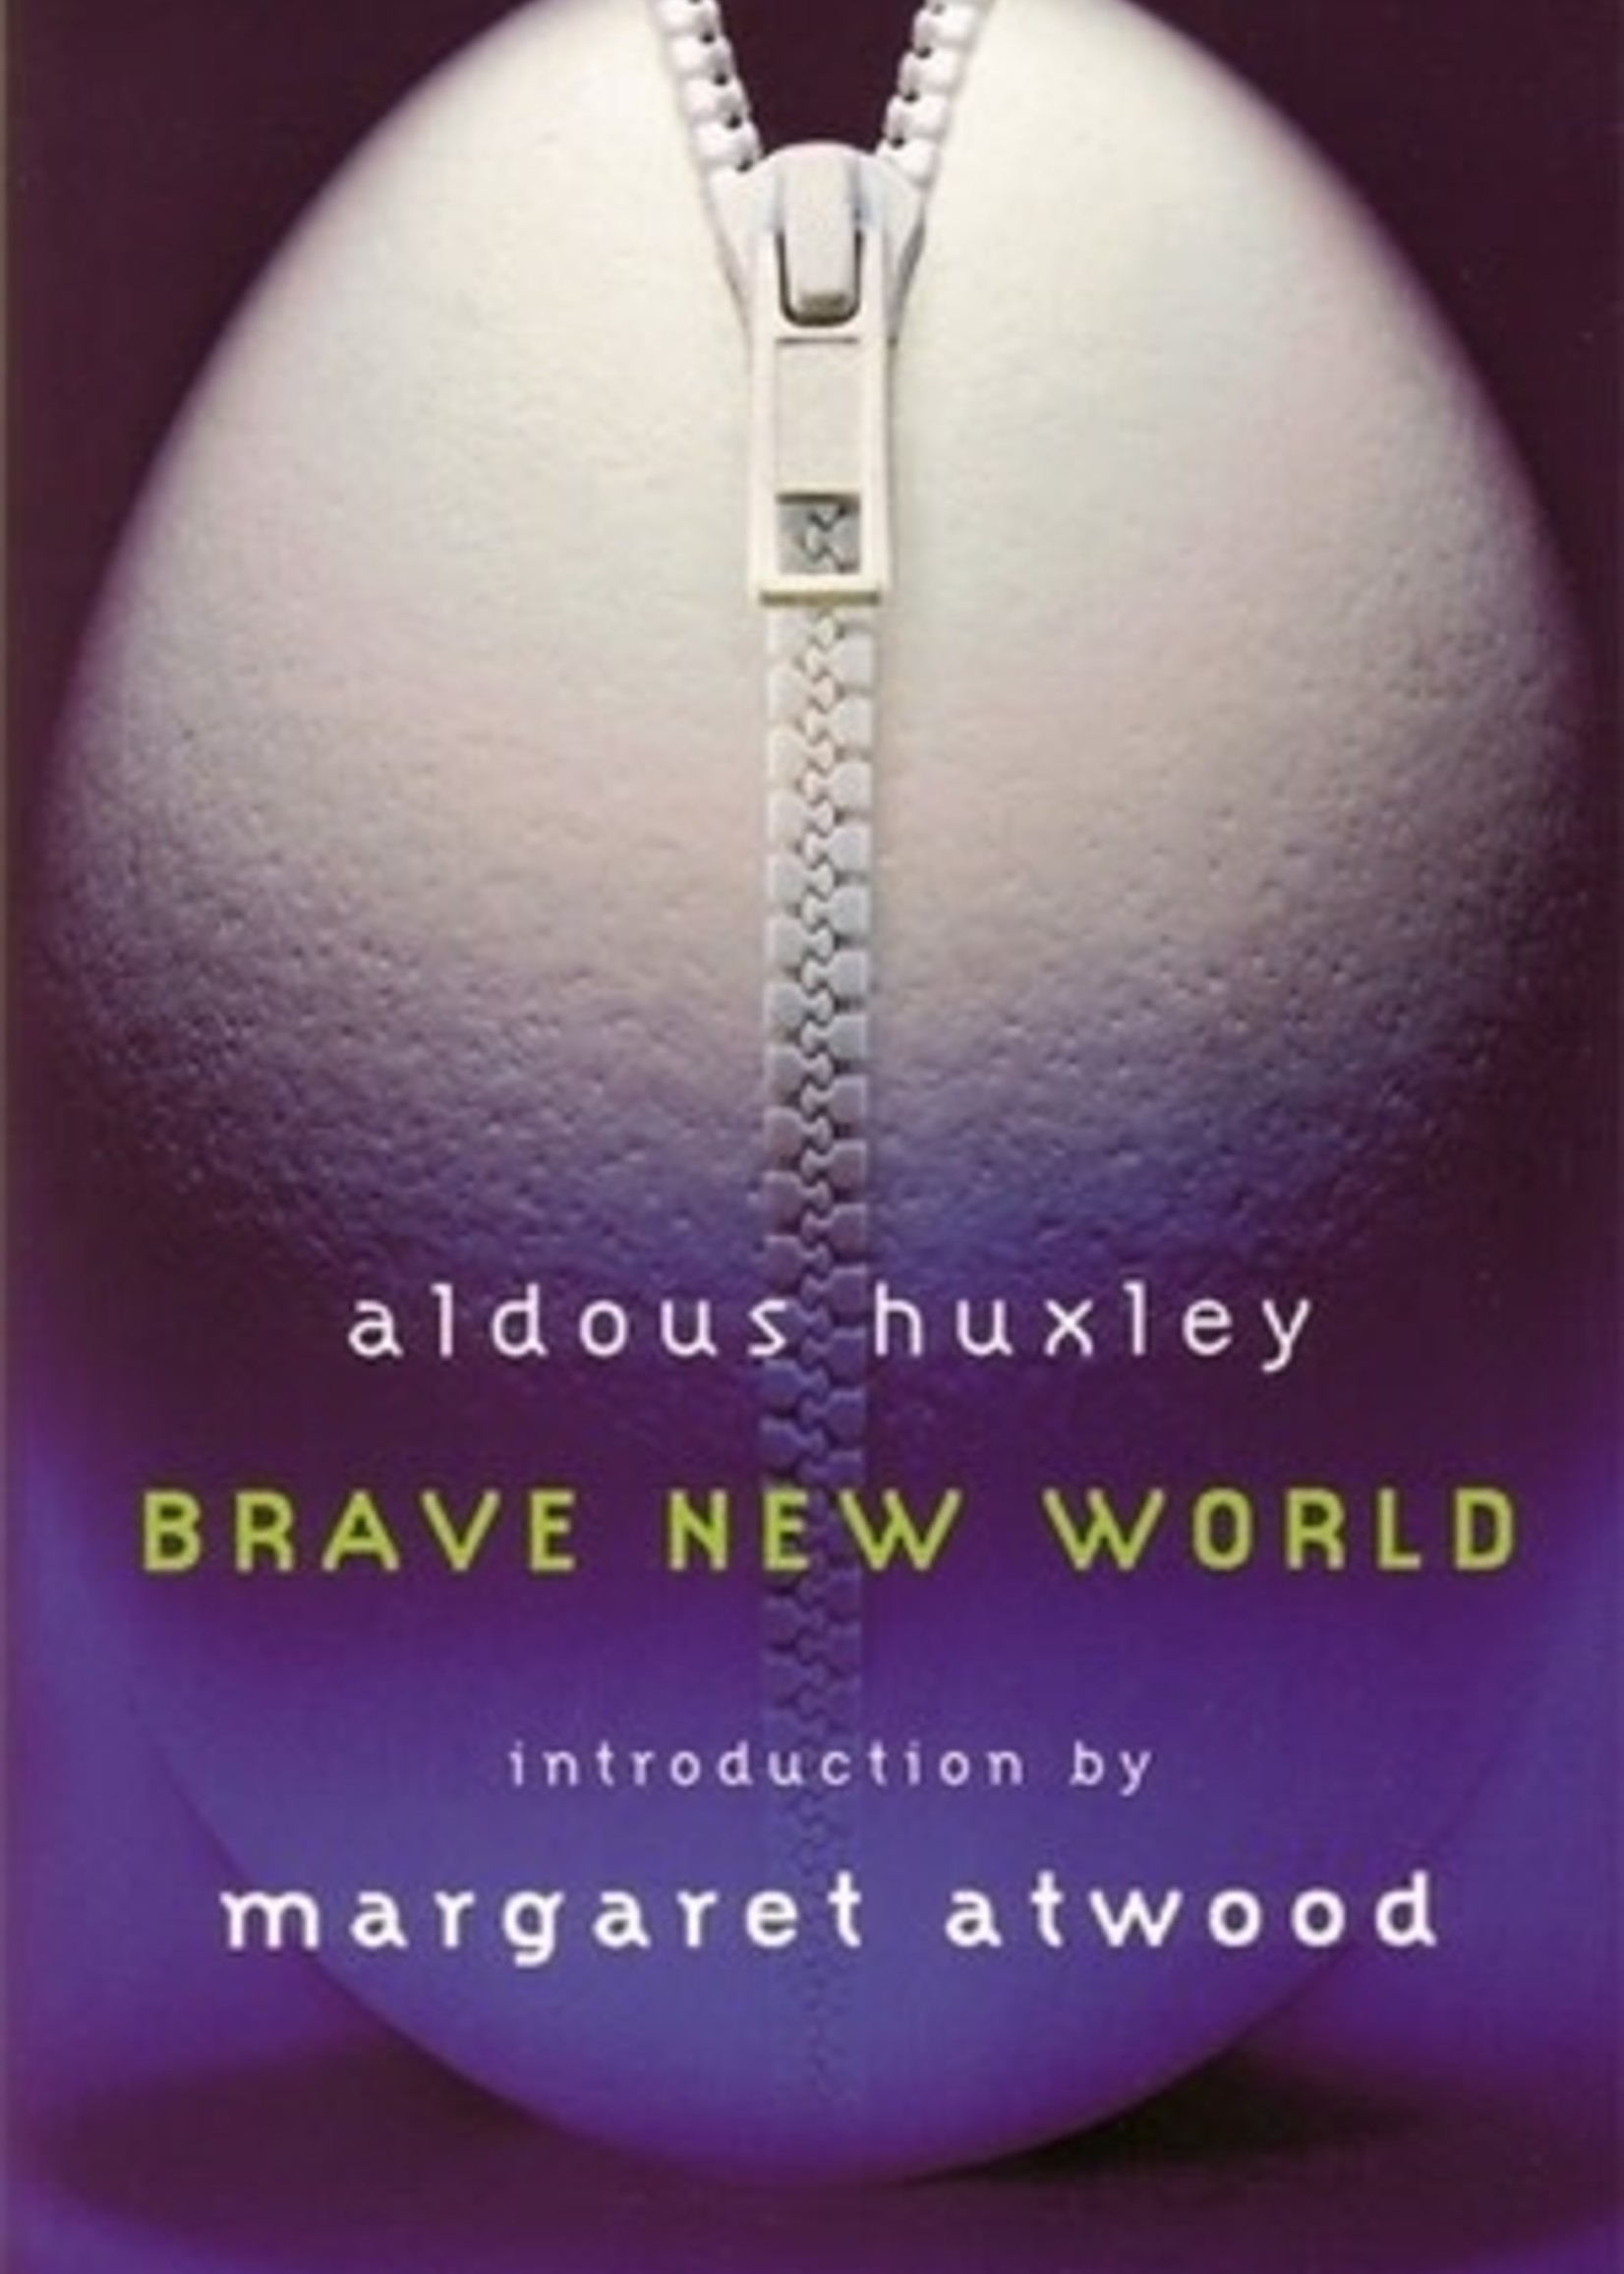 Brave New World by Alduos Huxley